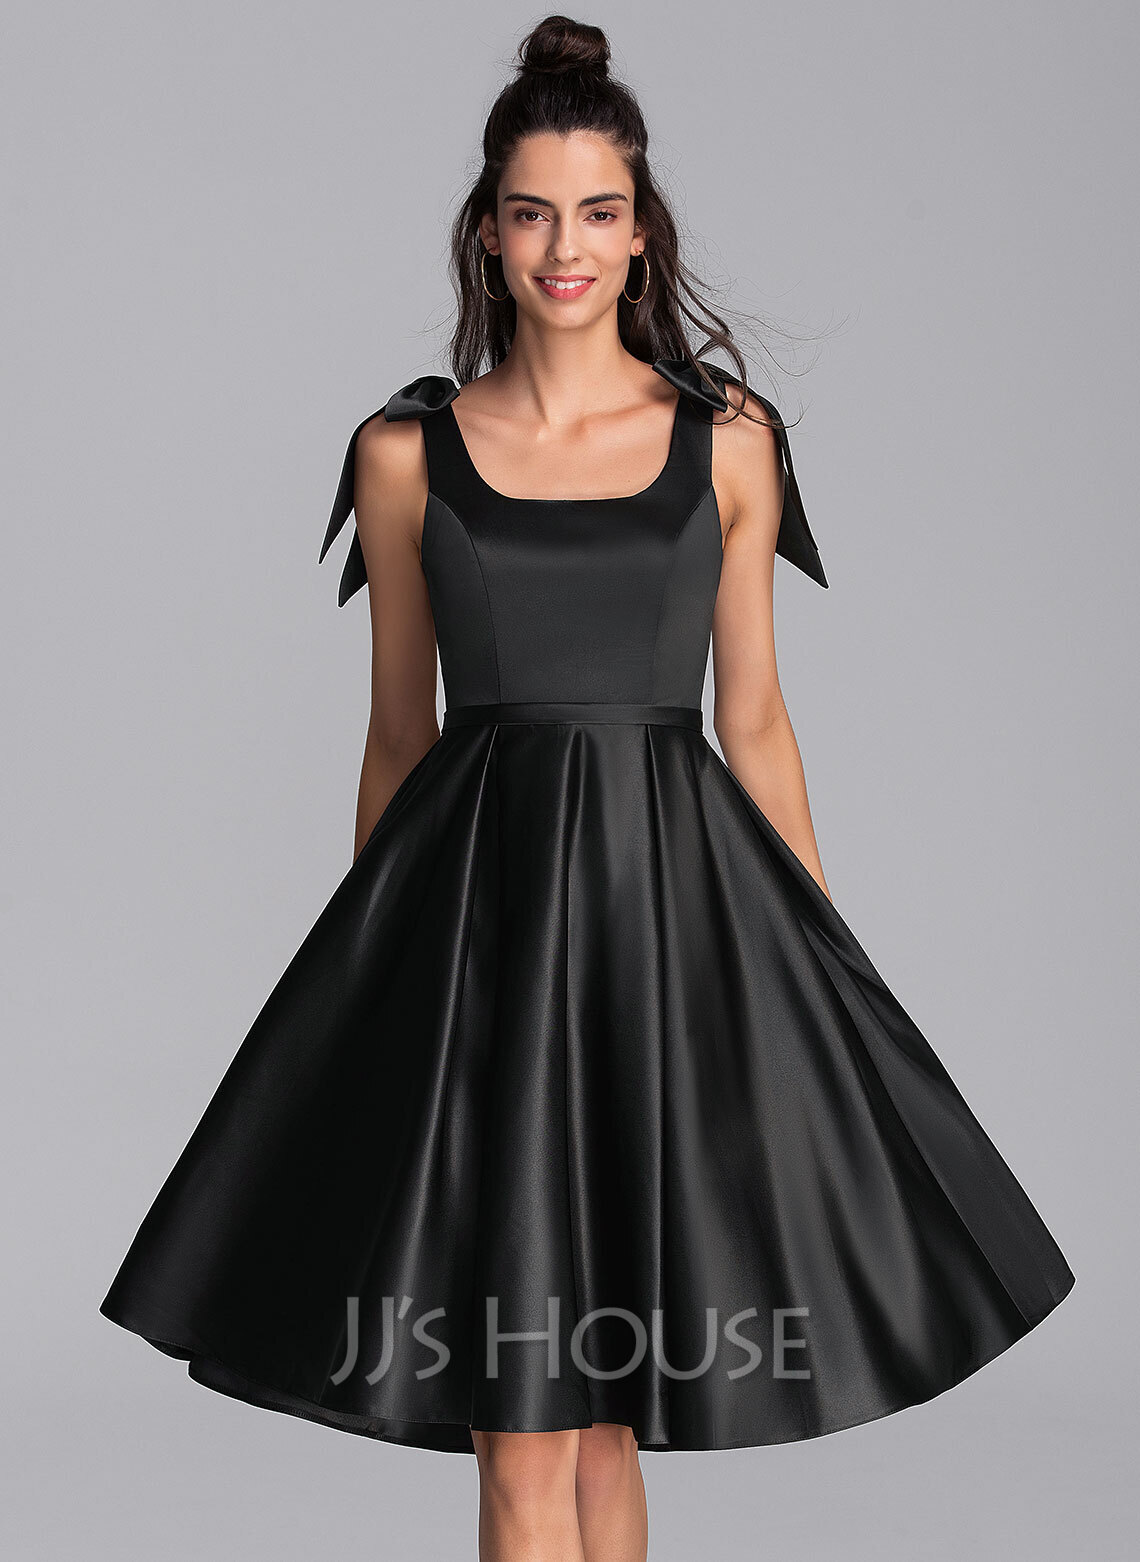 A-Line Square Neckline Knee-Length Satin Homecoming Dress With Bow(s)